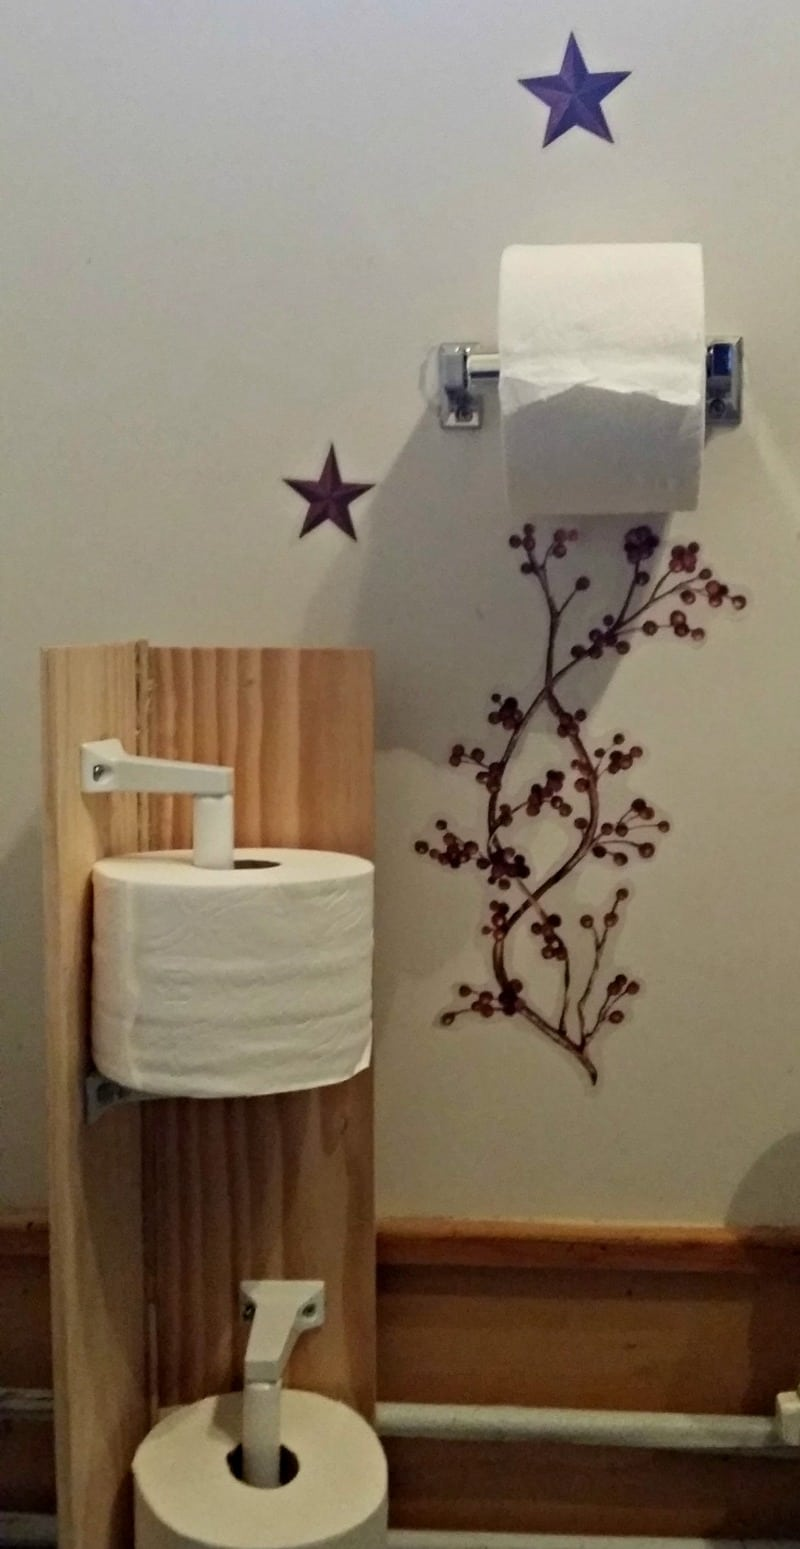 plain view of the diy toilet paper stand